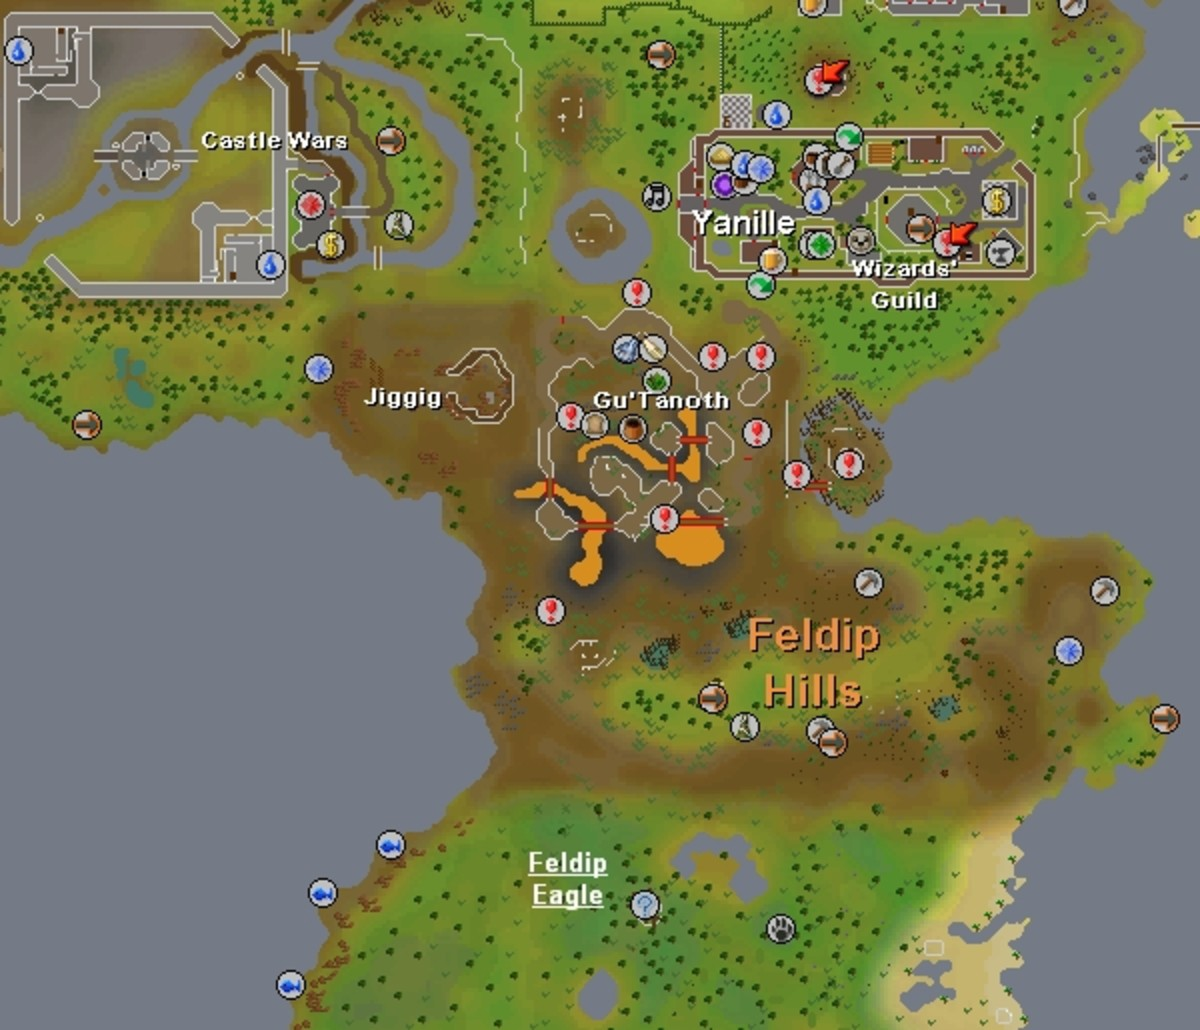 runescape-agility-shortcuts-how-to-build-hidey-holes-and-rope-racks-guide